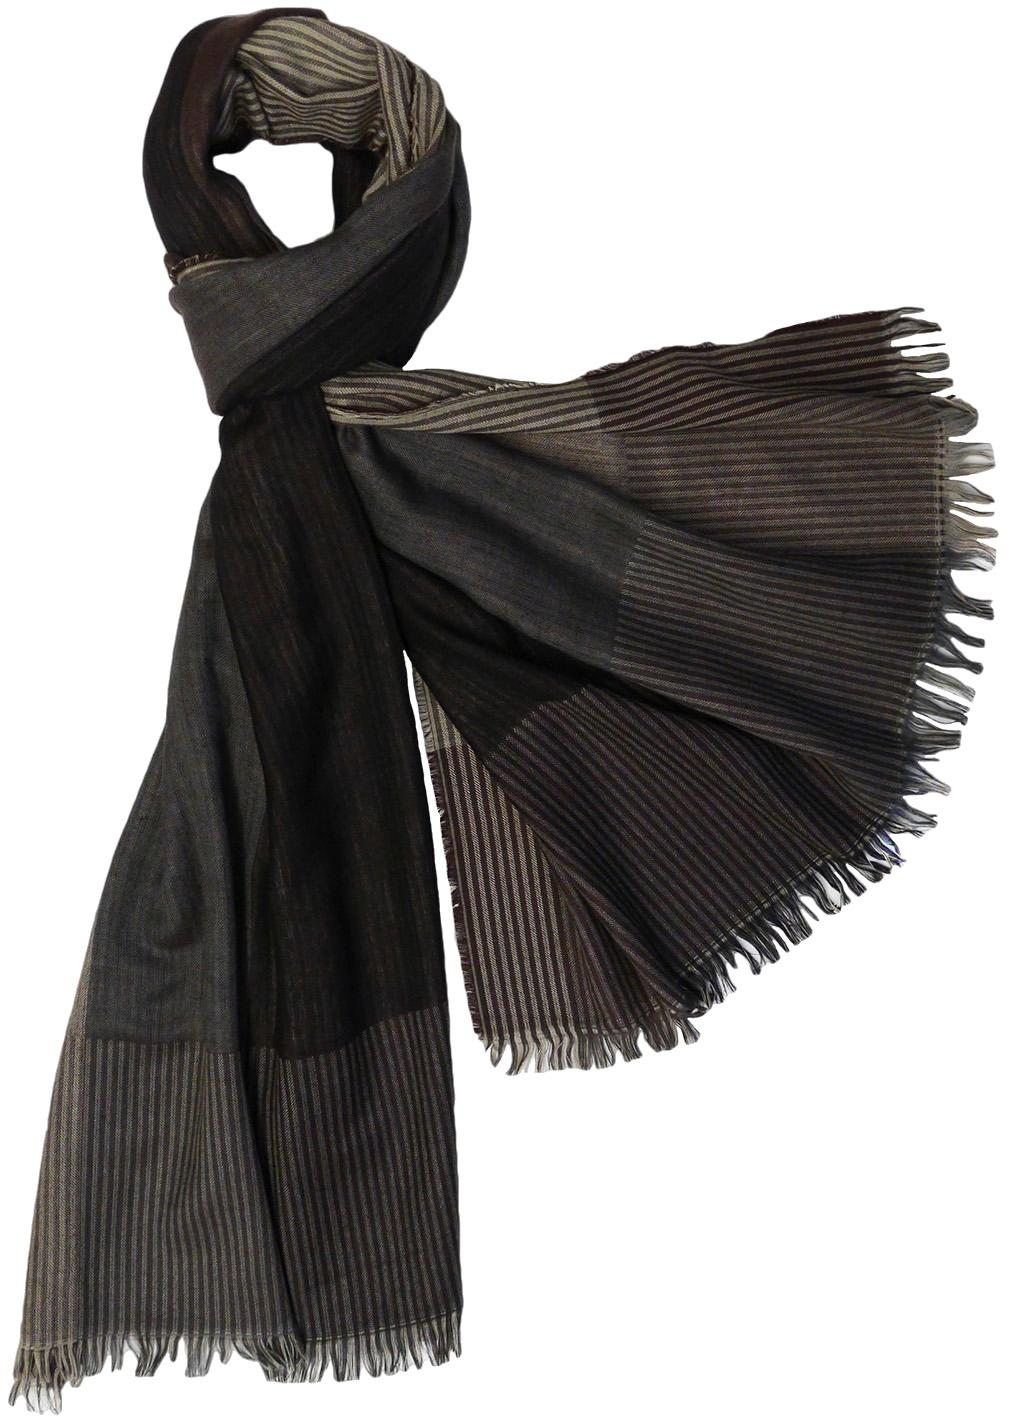 Large Color Block Stripes Scarf with Fringe, Black Brown Green Grey Pink